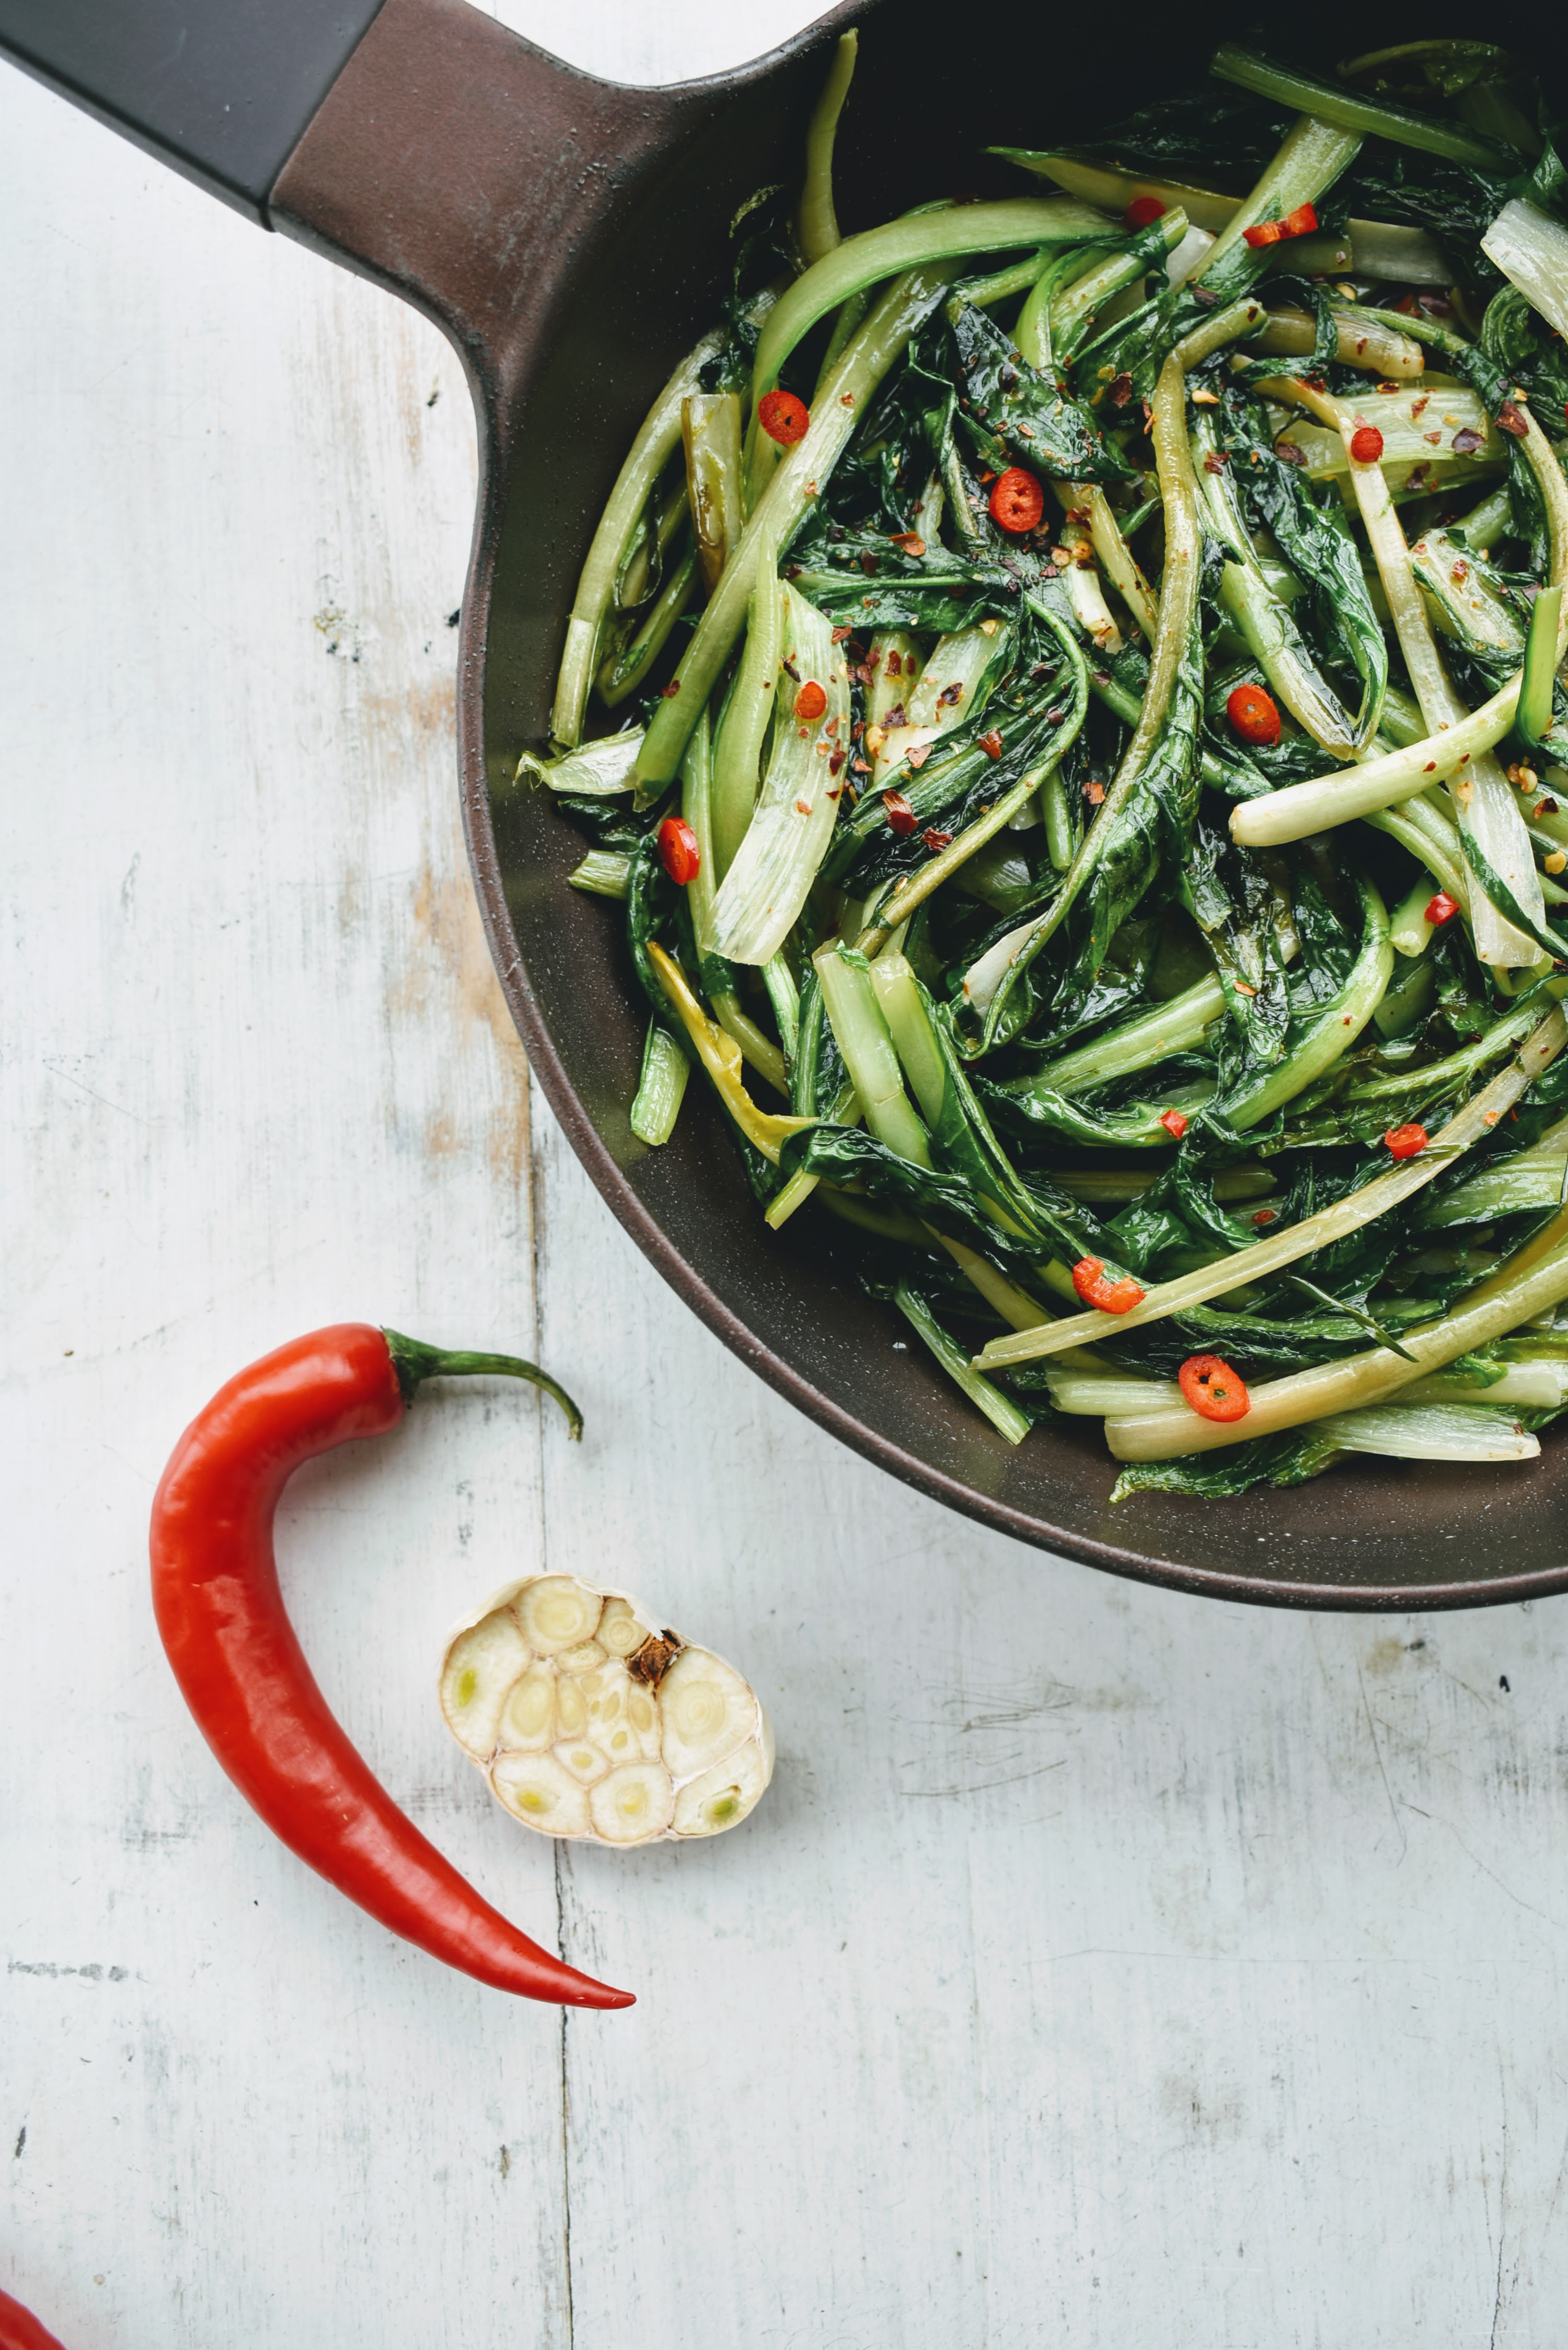 Roman Style Sauteed Catalonia Chicory with Garlic and Hot Peppers – Puntarelle Ripassate in Padella Recipe